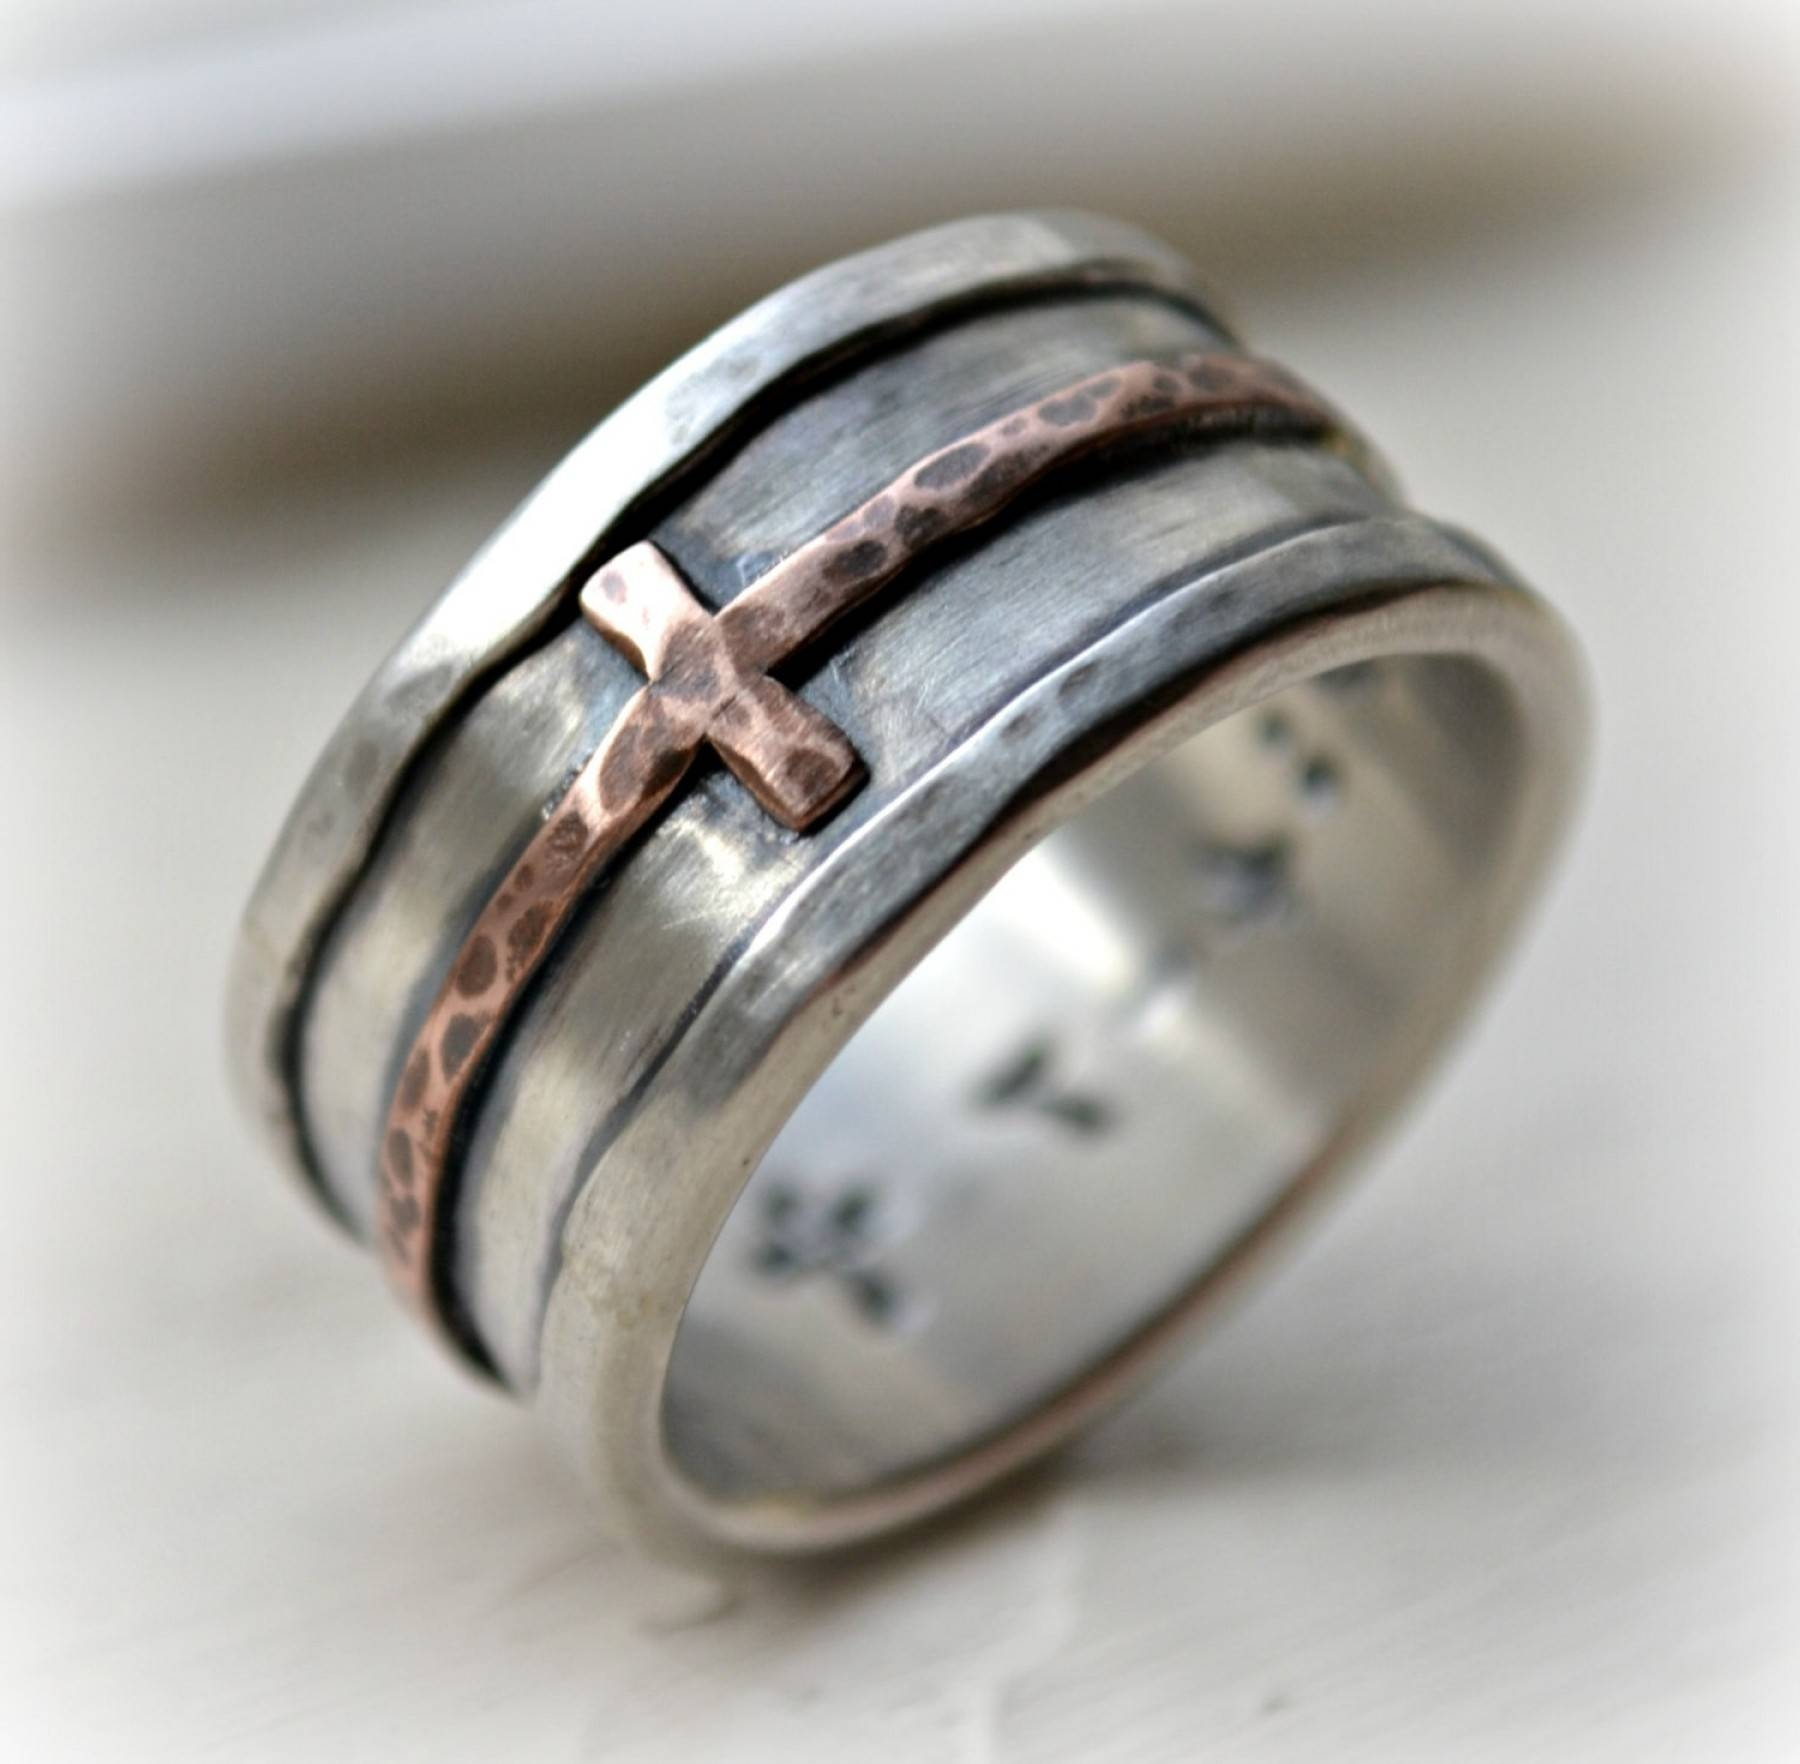 Photo Gallery of Mens Scottish Wedding Bands Viewing 13 of 15 Photos